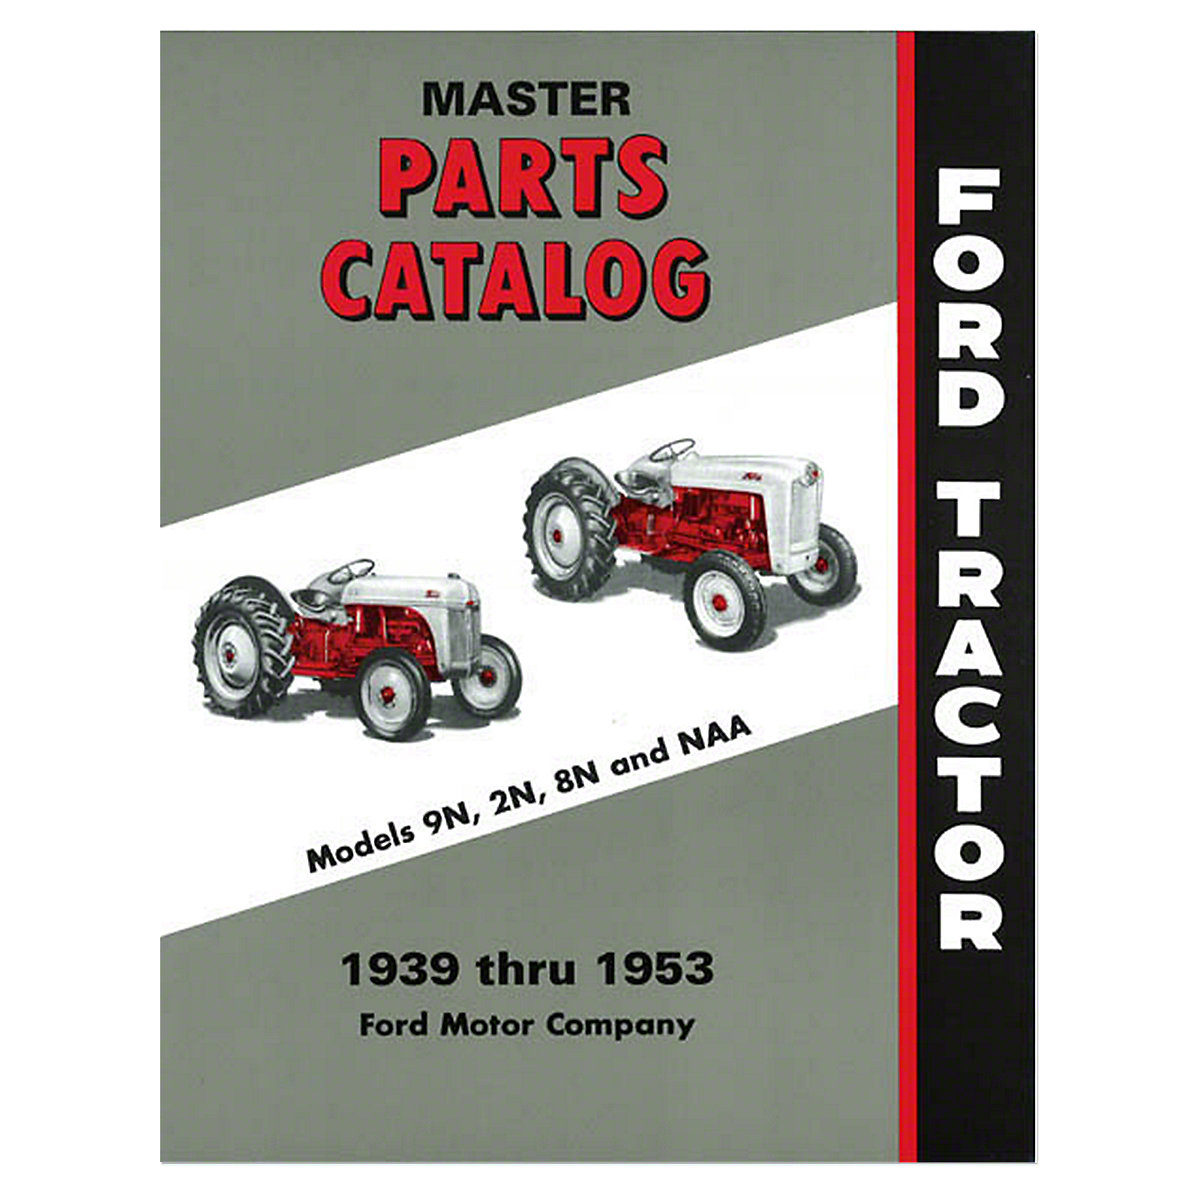 Master Parts Catalog, 1939-1953 (9N - Jubilee). In Stock